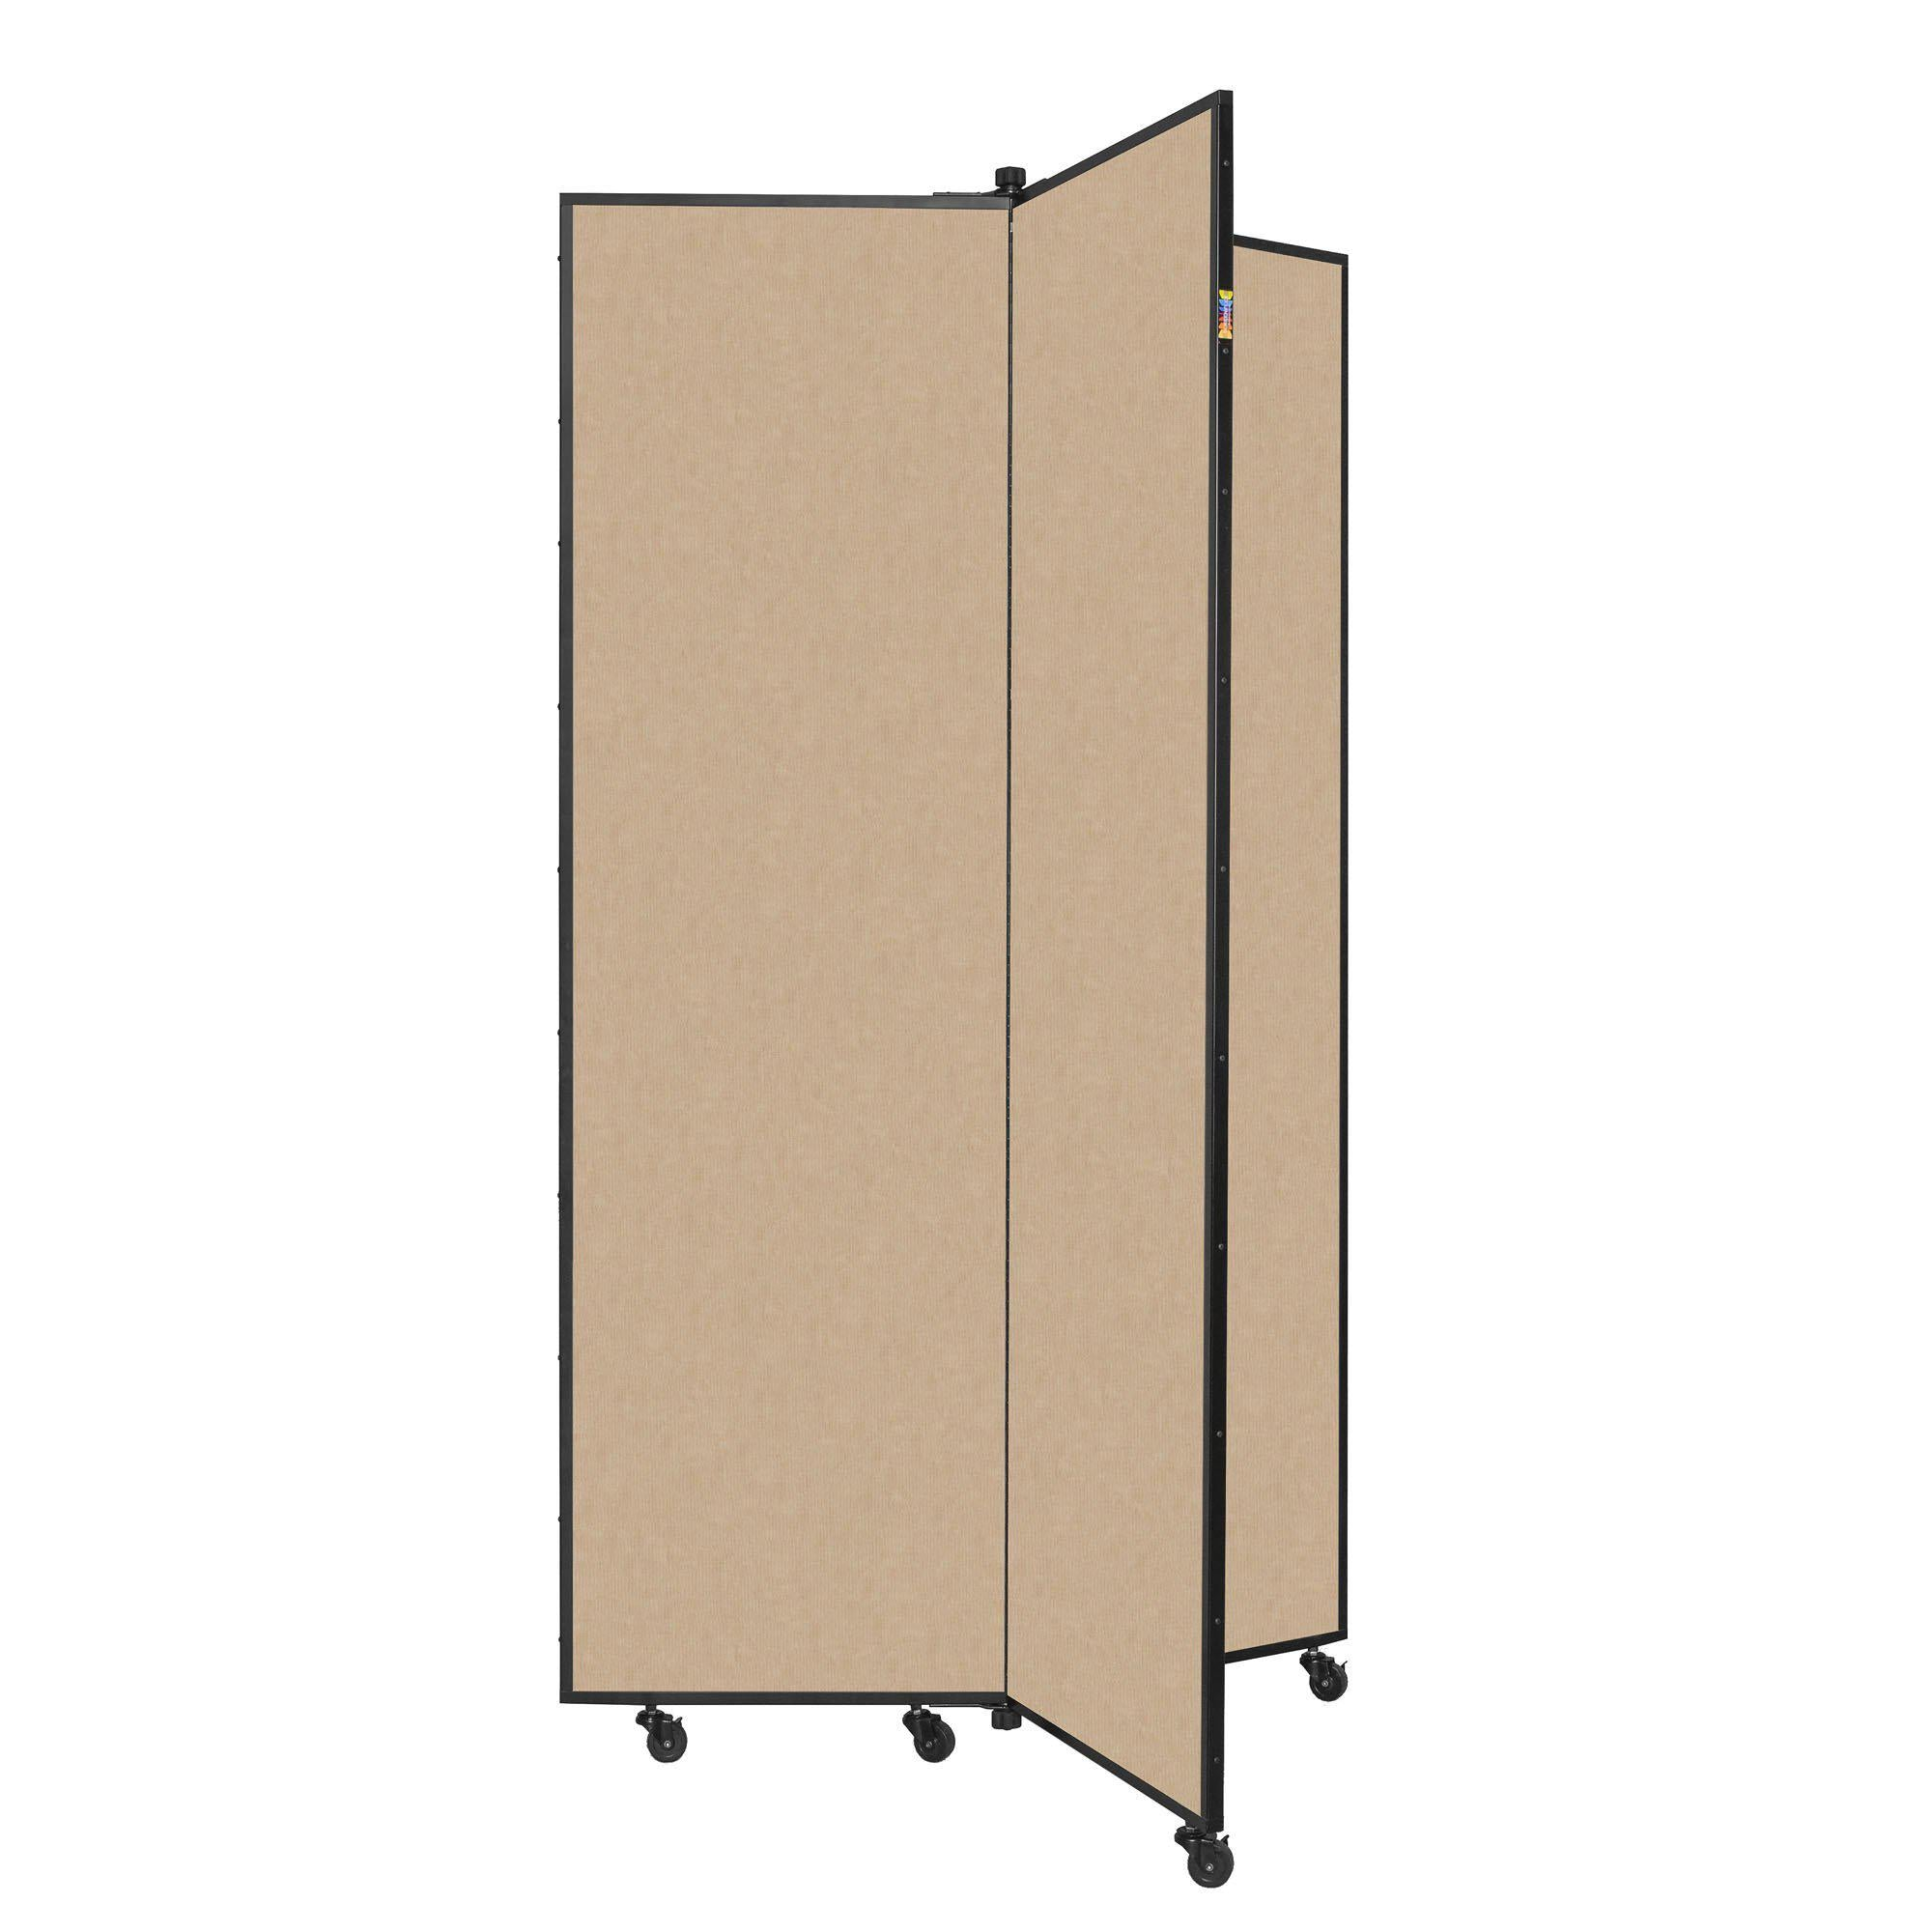 "Screenflex Display Tower-Partitions & Display Panels-5' 9""-3-"